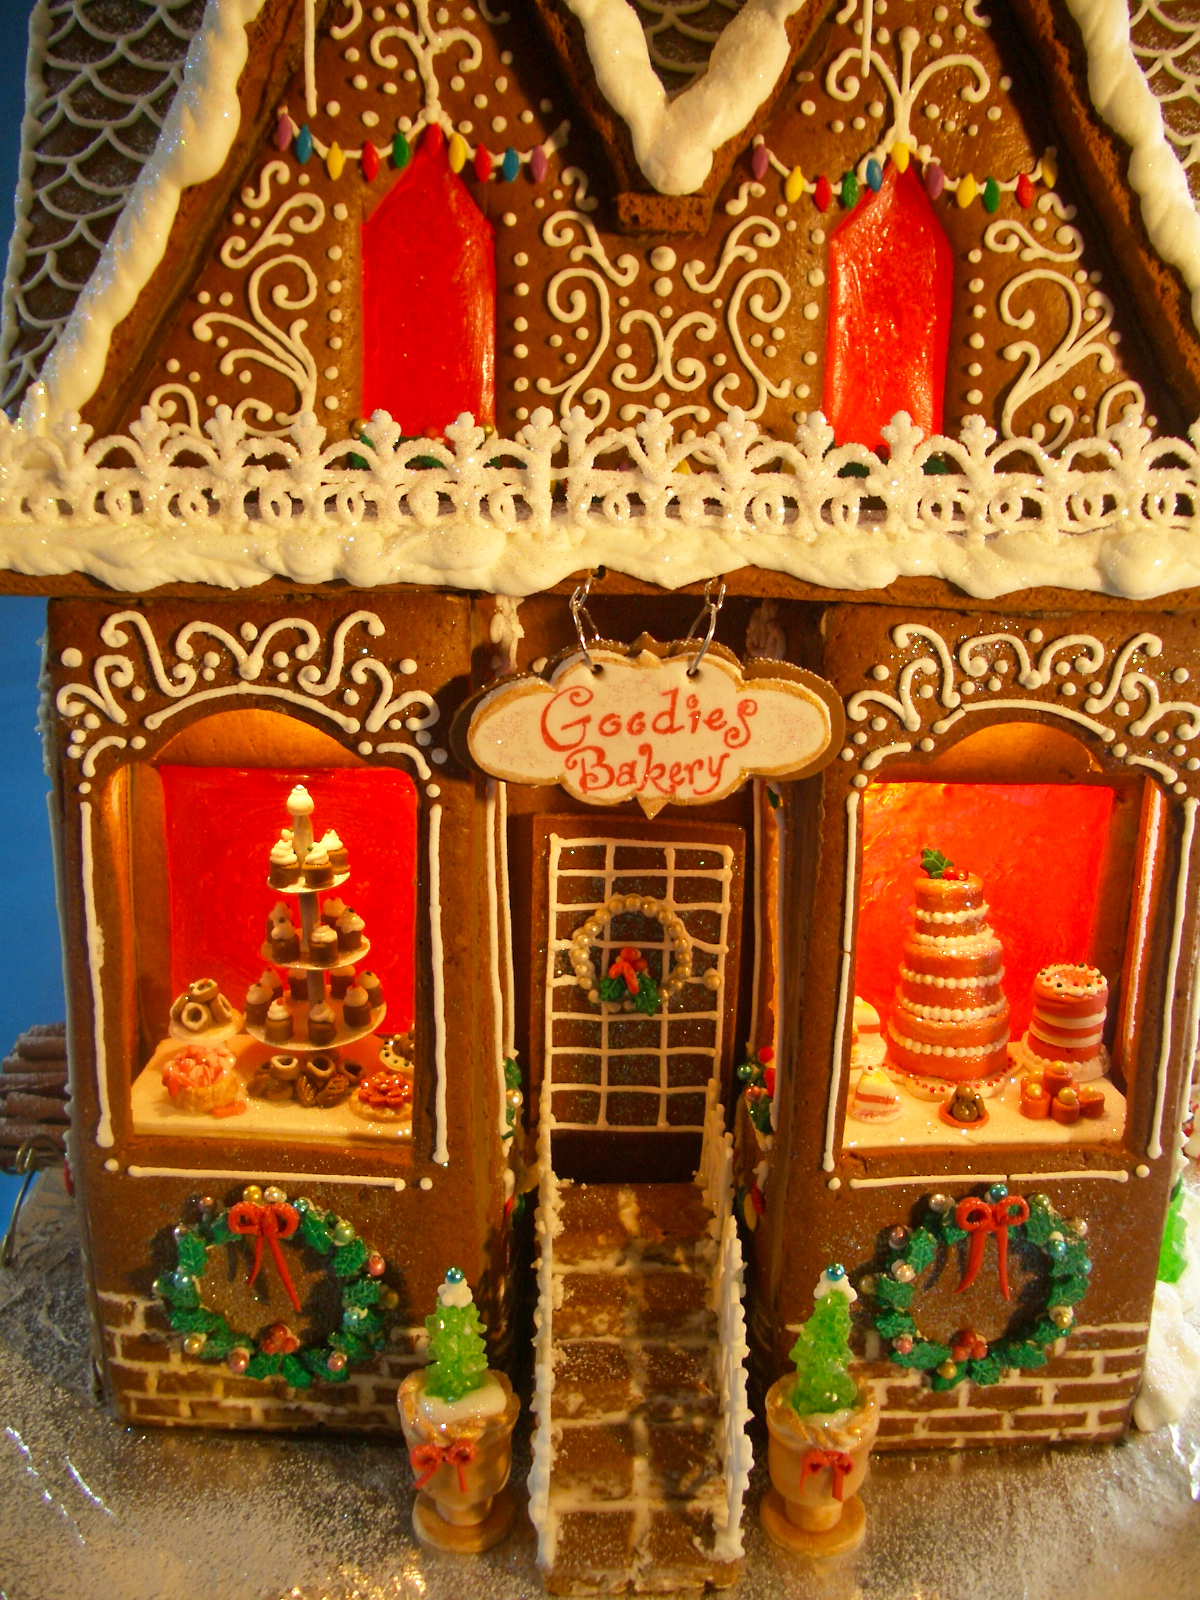 Gingerbread House 2012 - Goodies Bakery! - Goodies By Anna